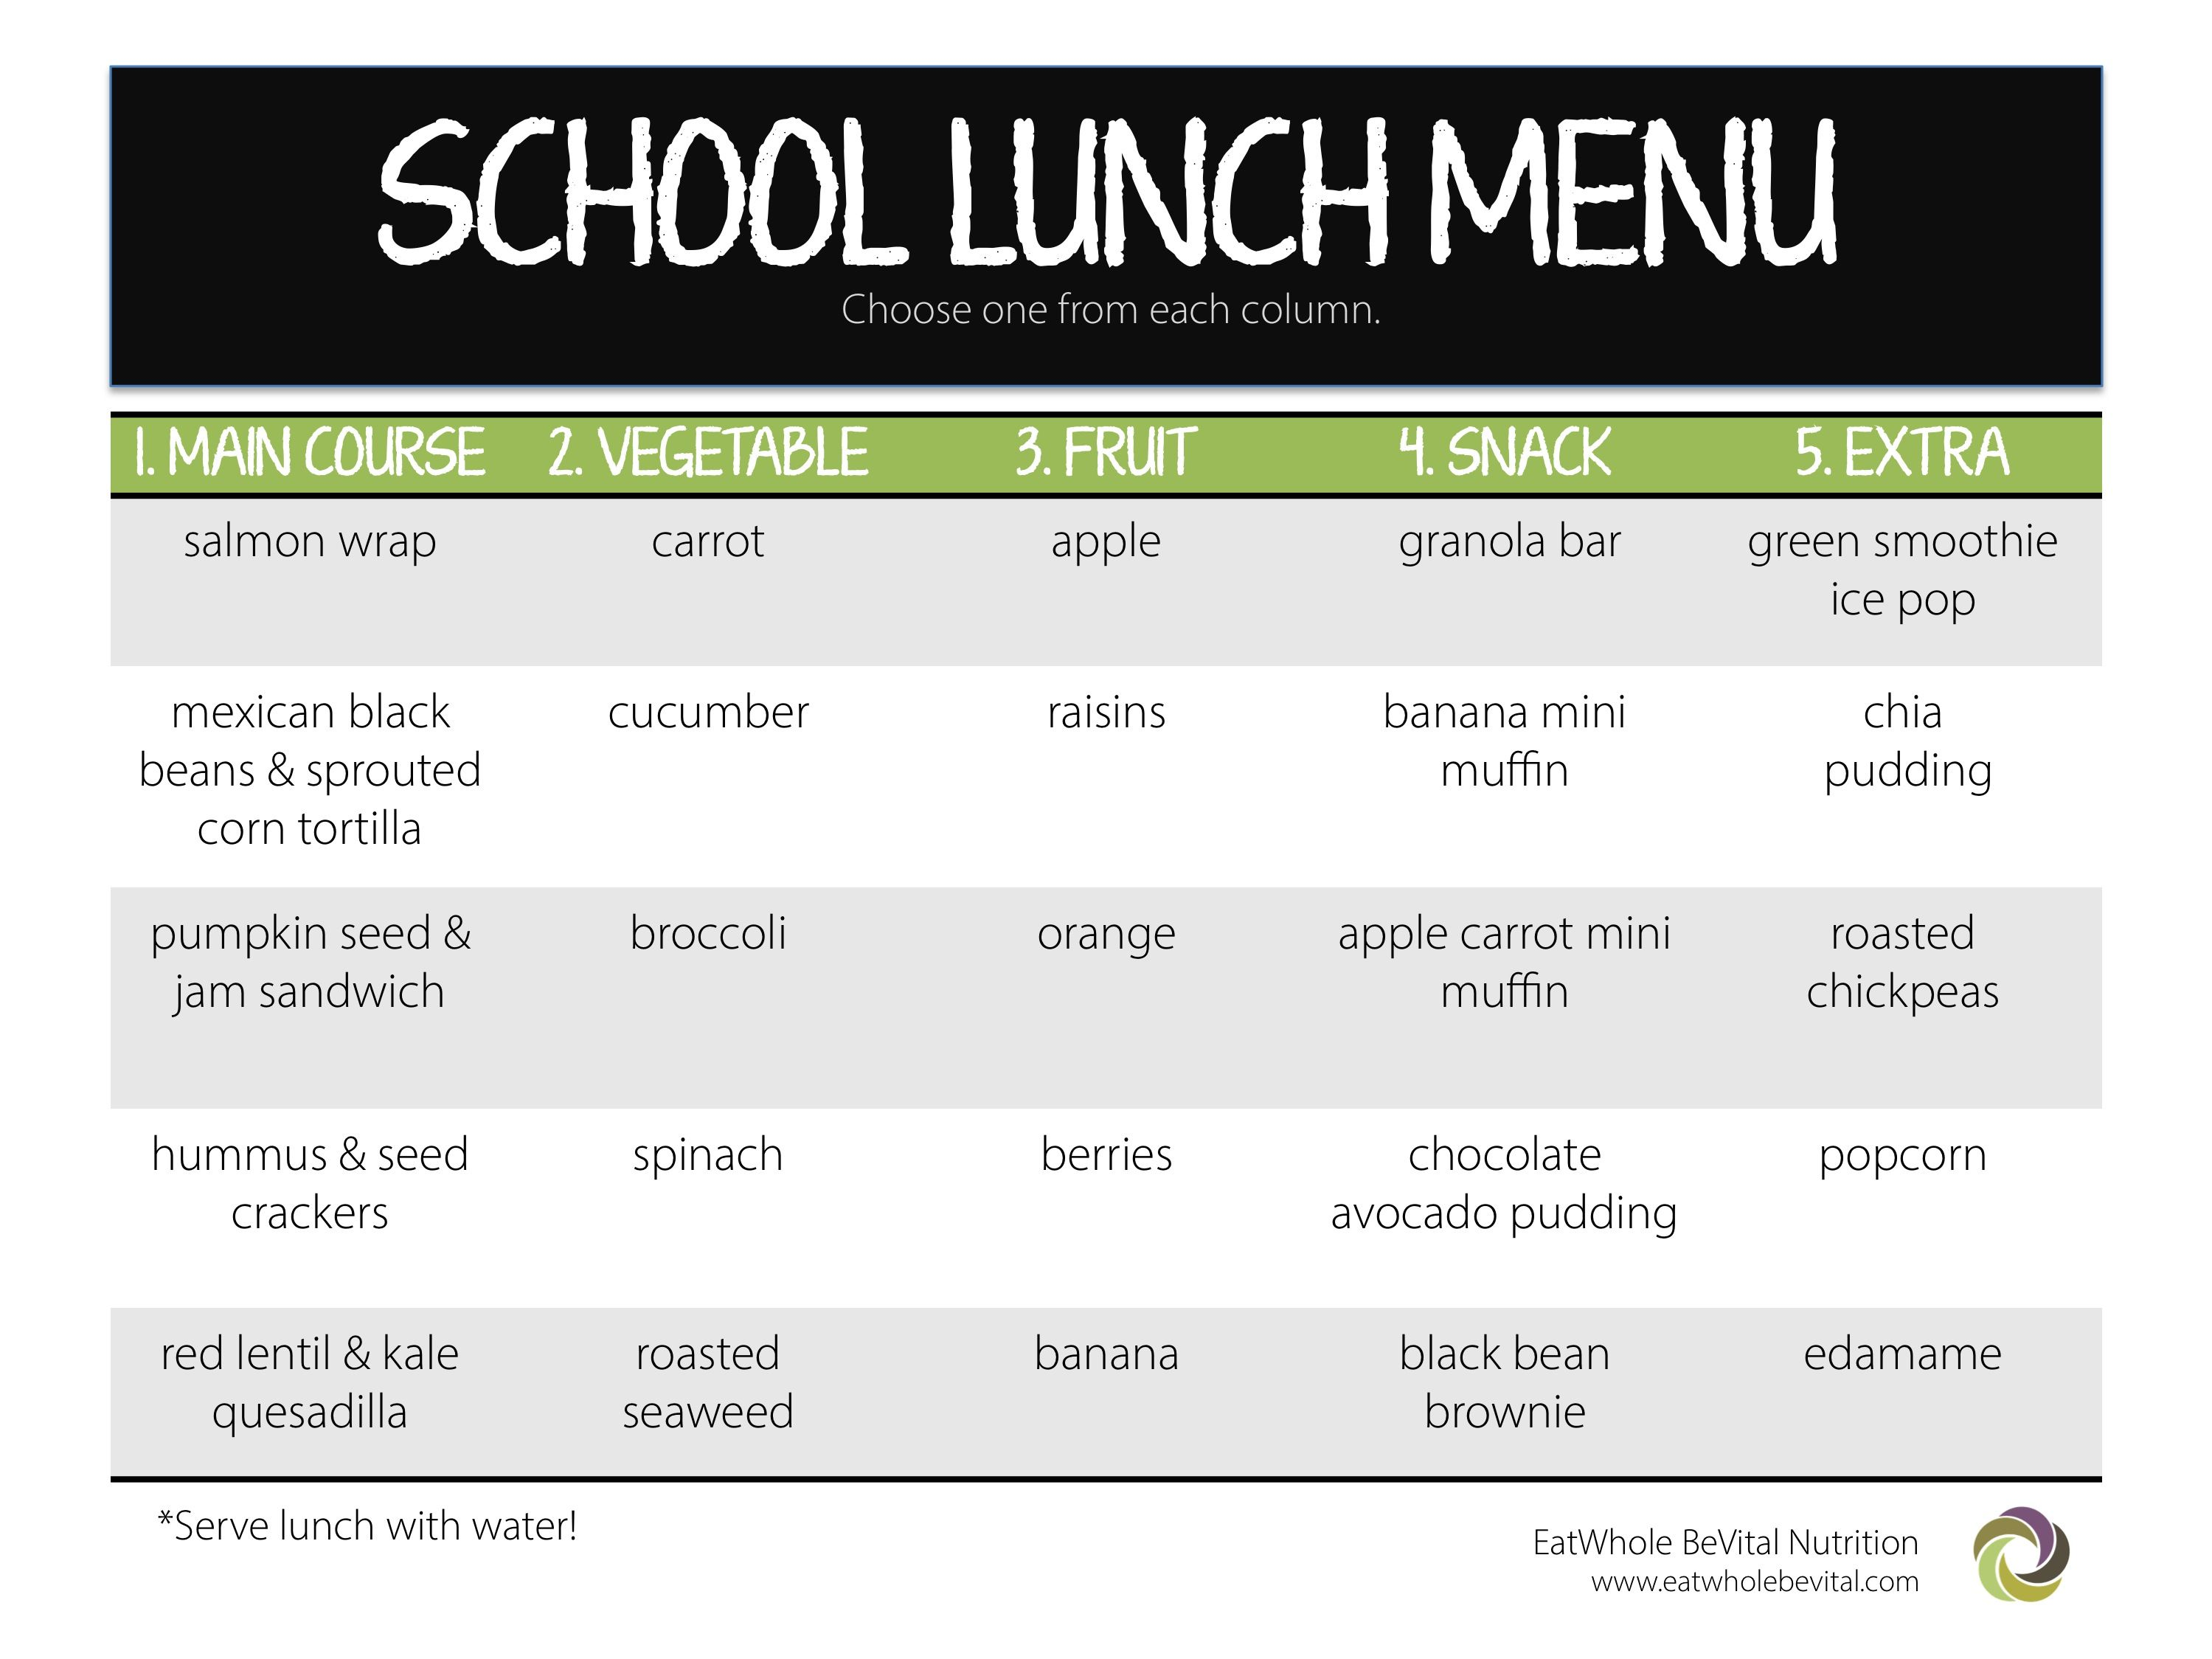 What School Lunch Menu